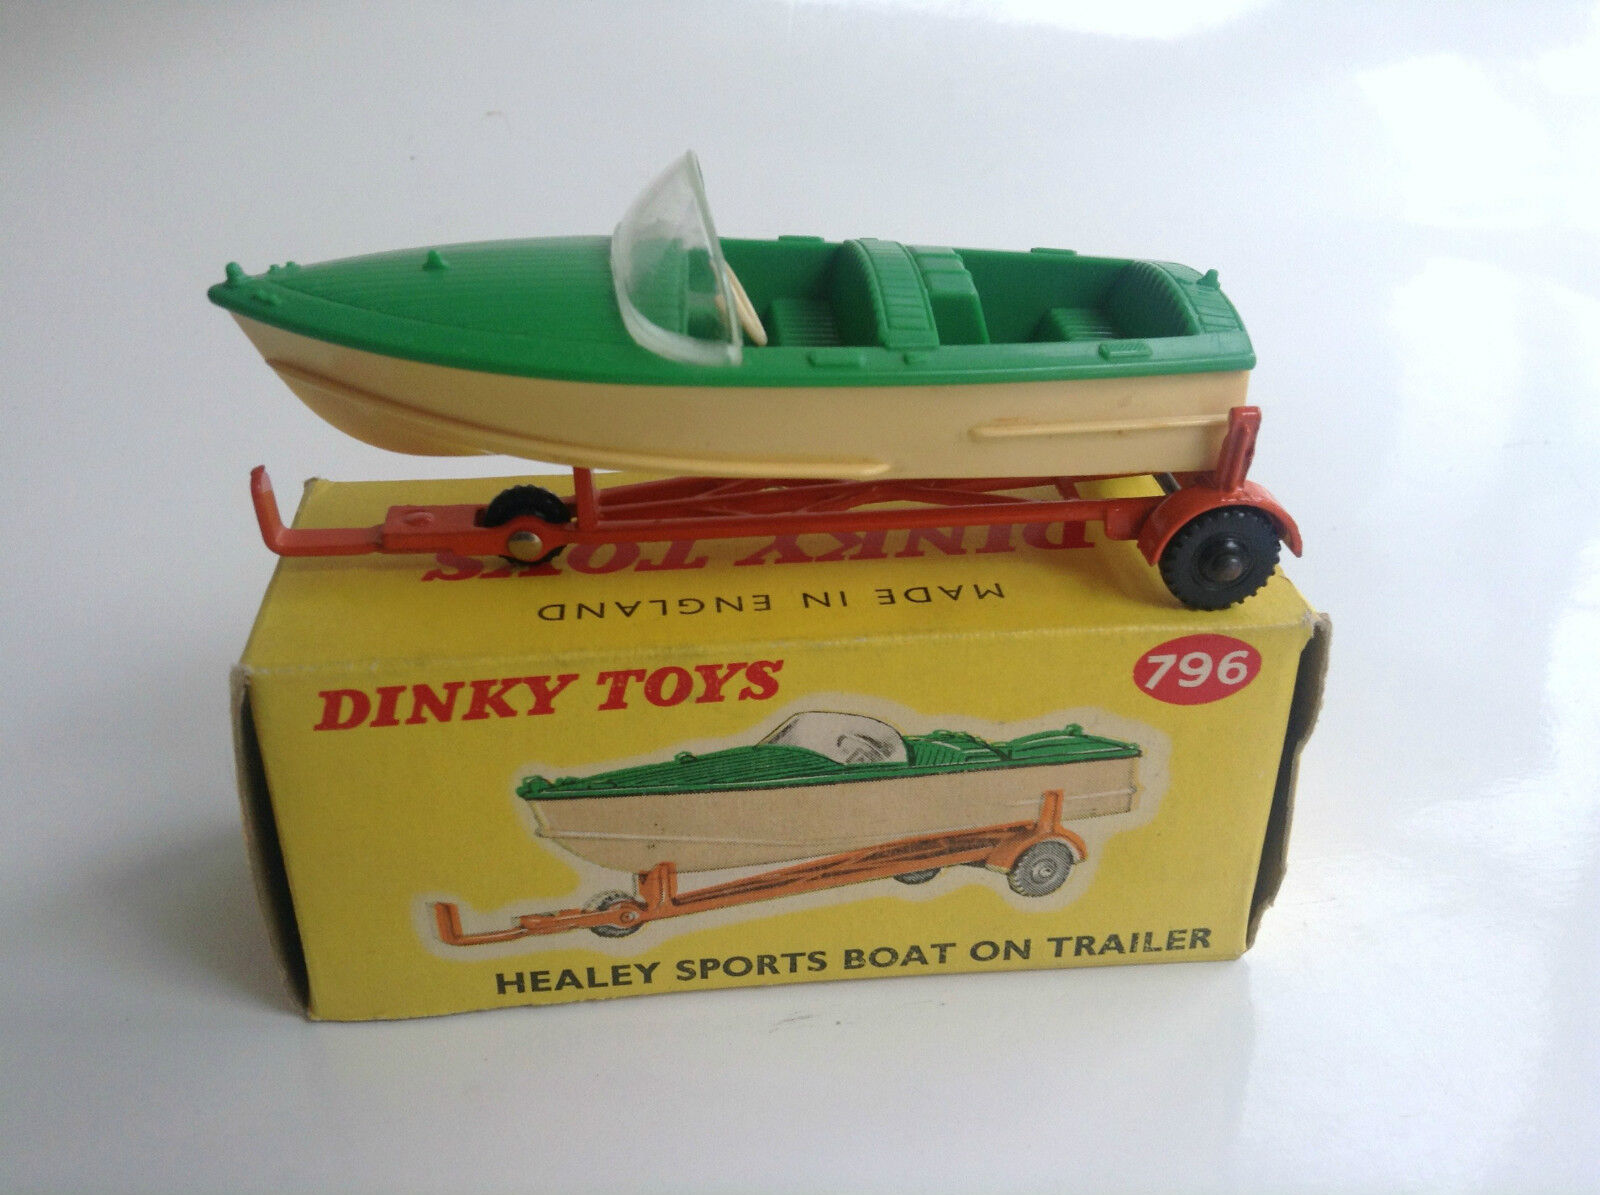 Rare Dinky Toys N° 796 Healey Sport Boat on trailer ETAT NEUF